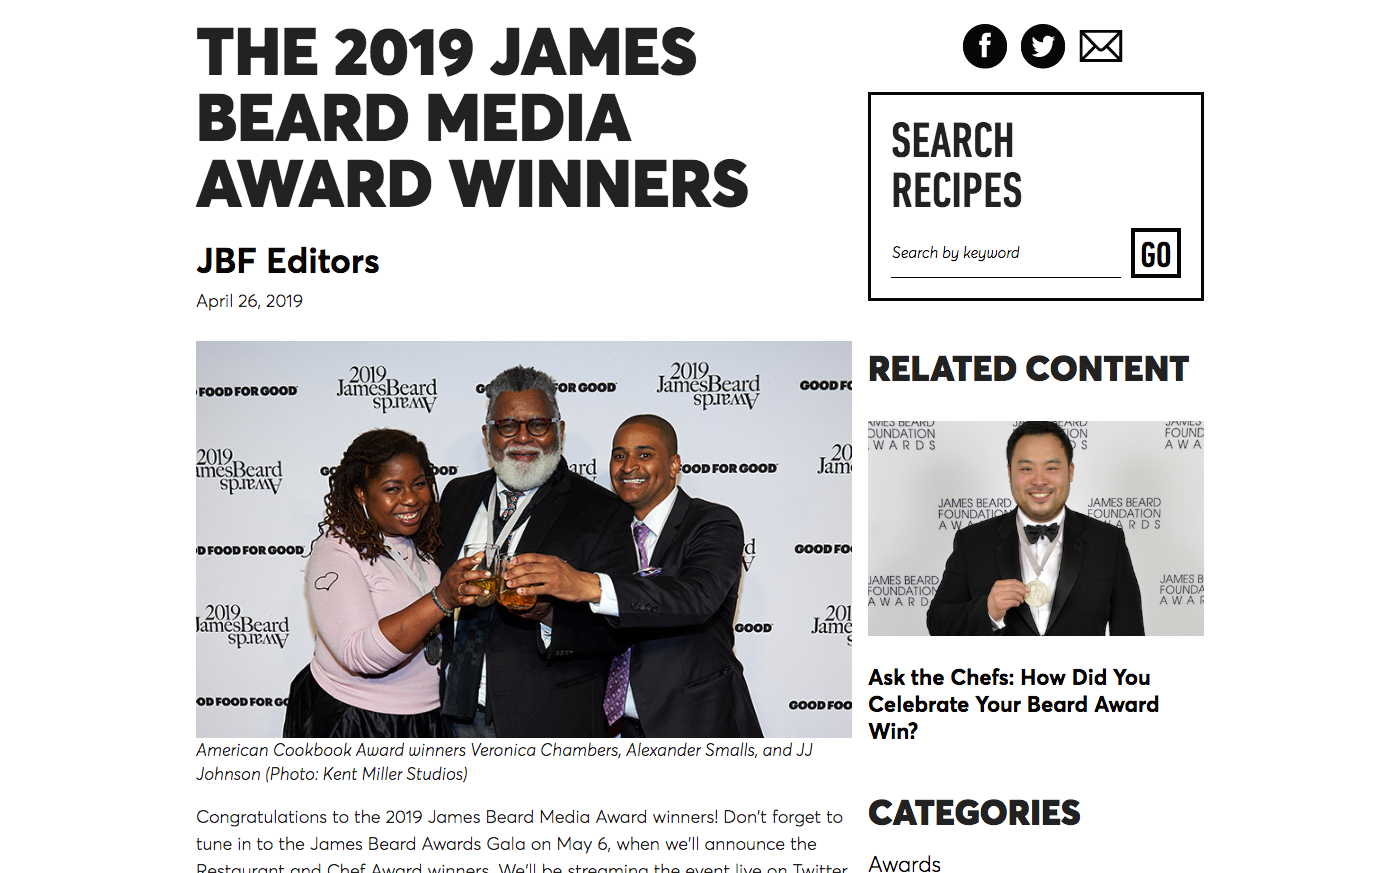 THE 2019 JAMES BEARD MEDIA AWARD WINNERS